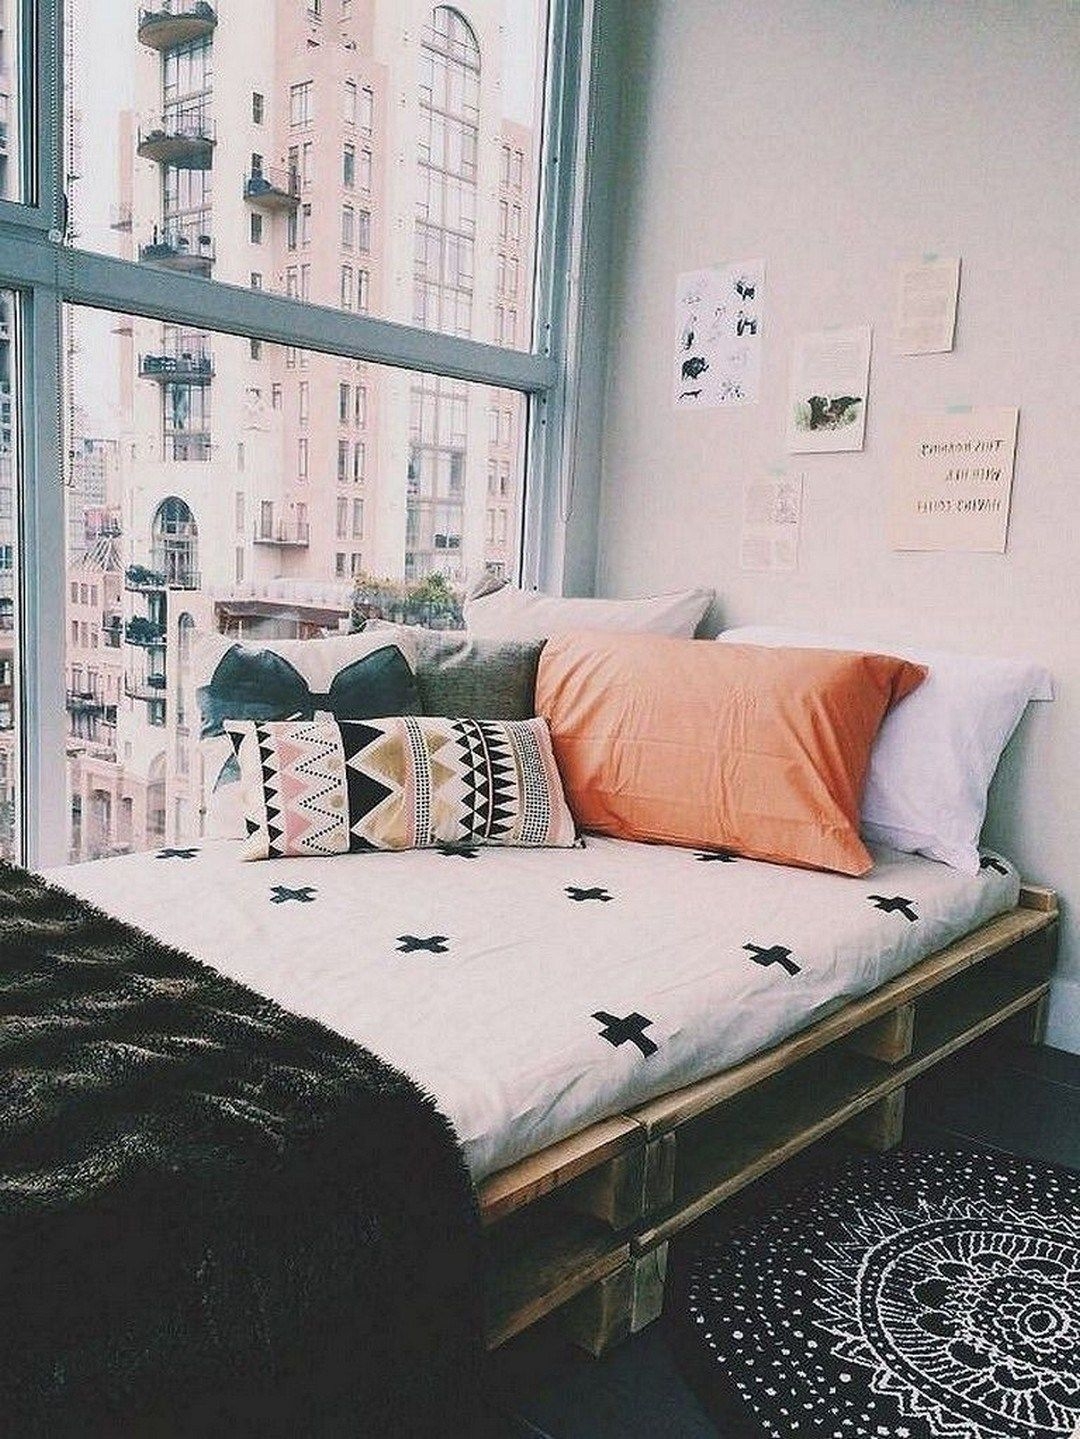 Design Your Own Dorm Room: 31 Elegant Dorm Room Decorating Ideas